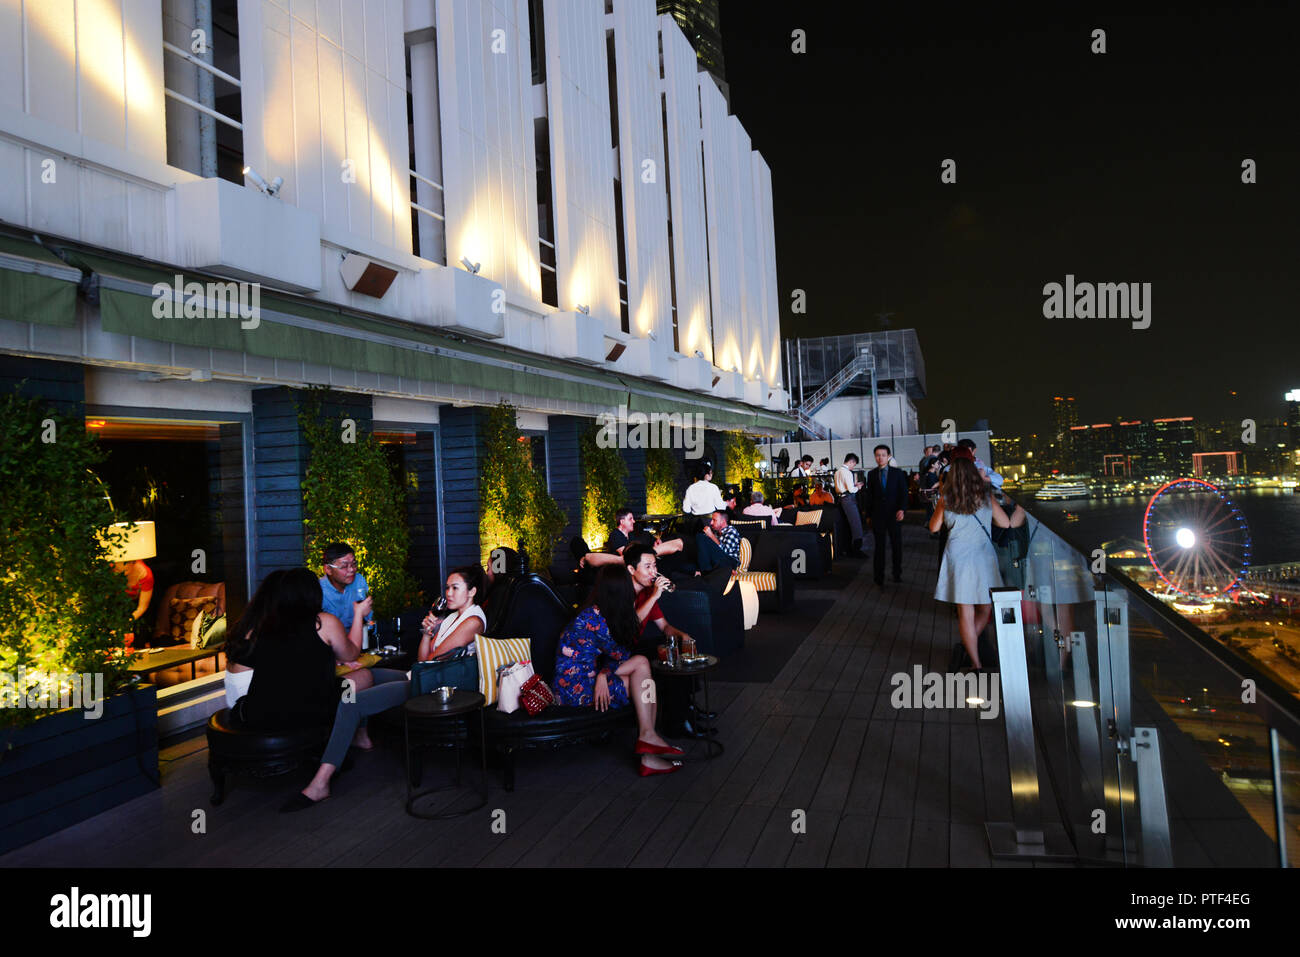 Sevva rooftop bar in Hong Kong. - Stock Image